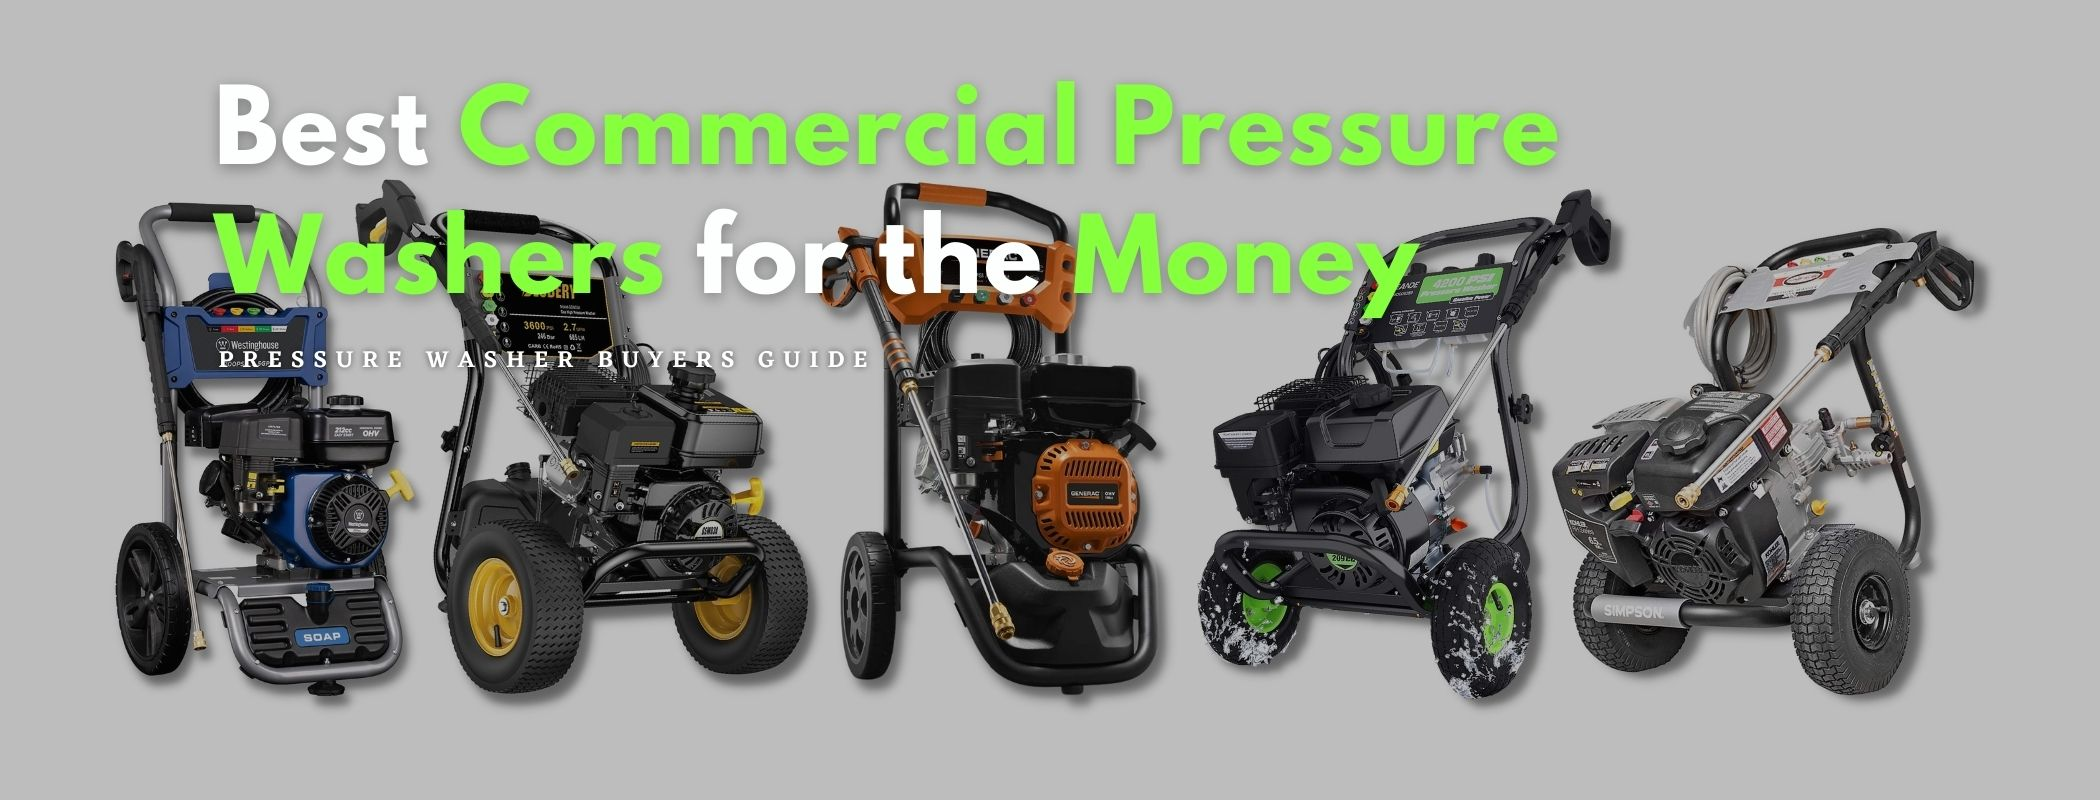 Best Commercial Pressure Washers for the Money Buyers' Guide